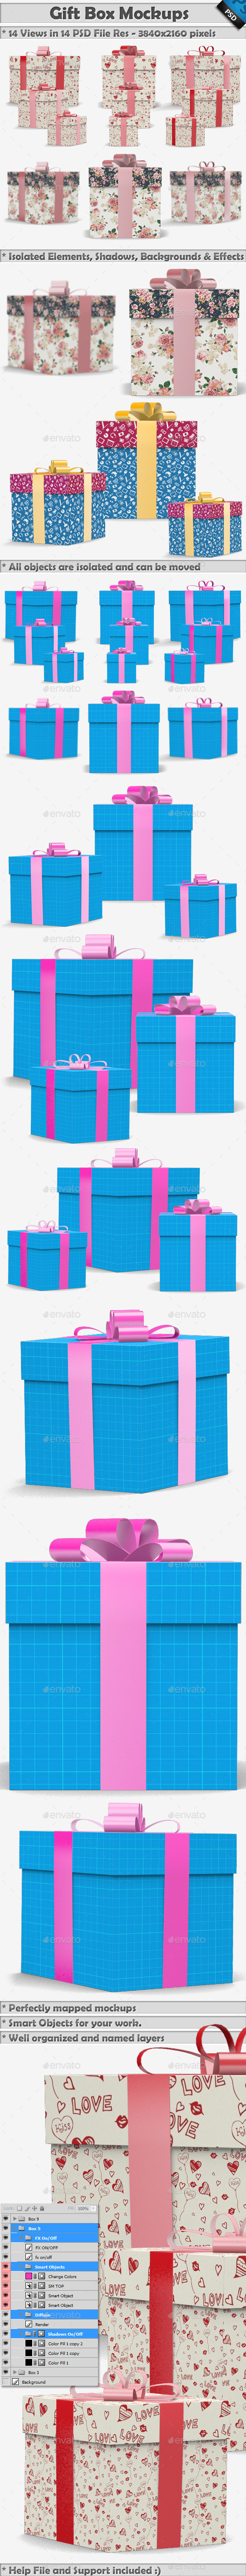 Gift Box Mockup - Miscellaneous Packaging